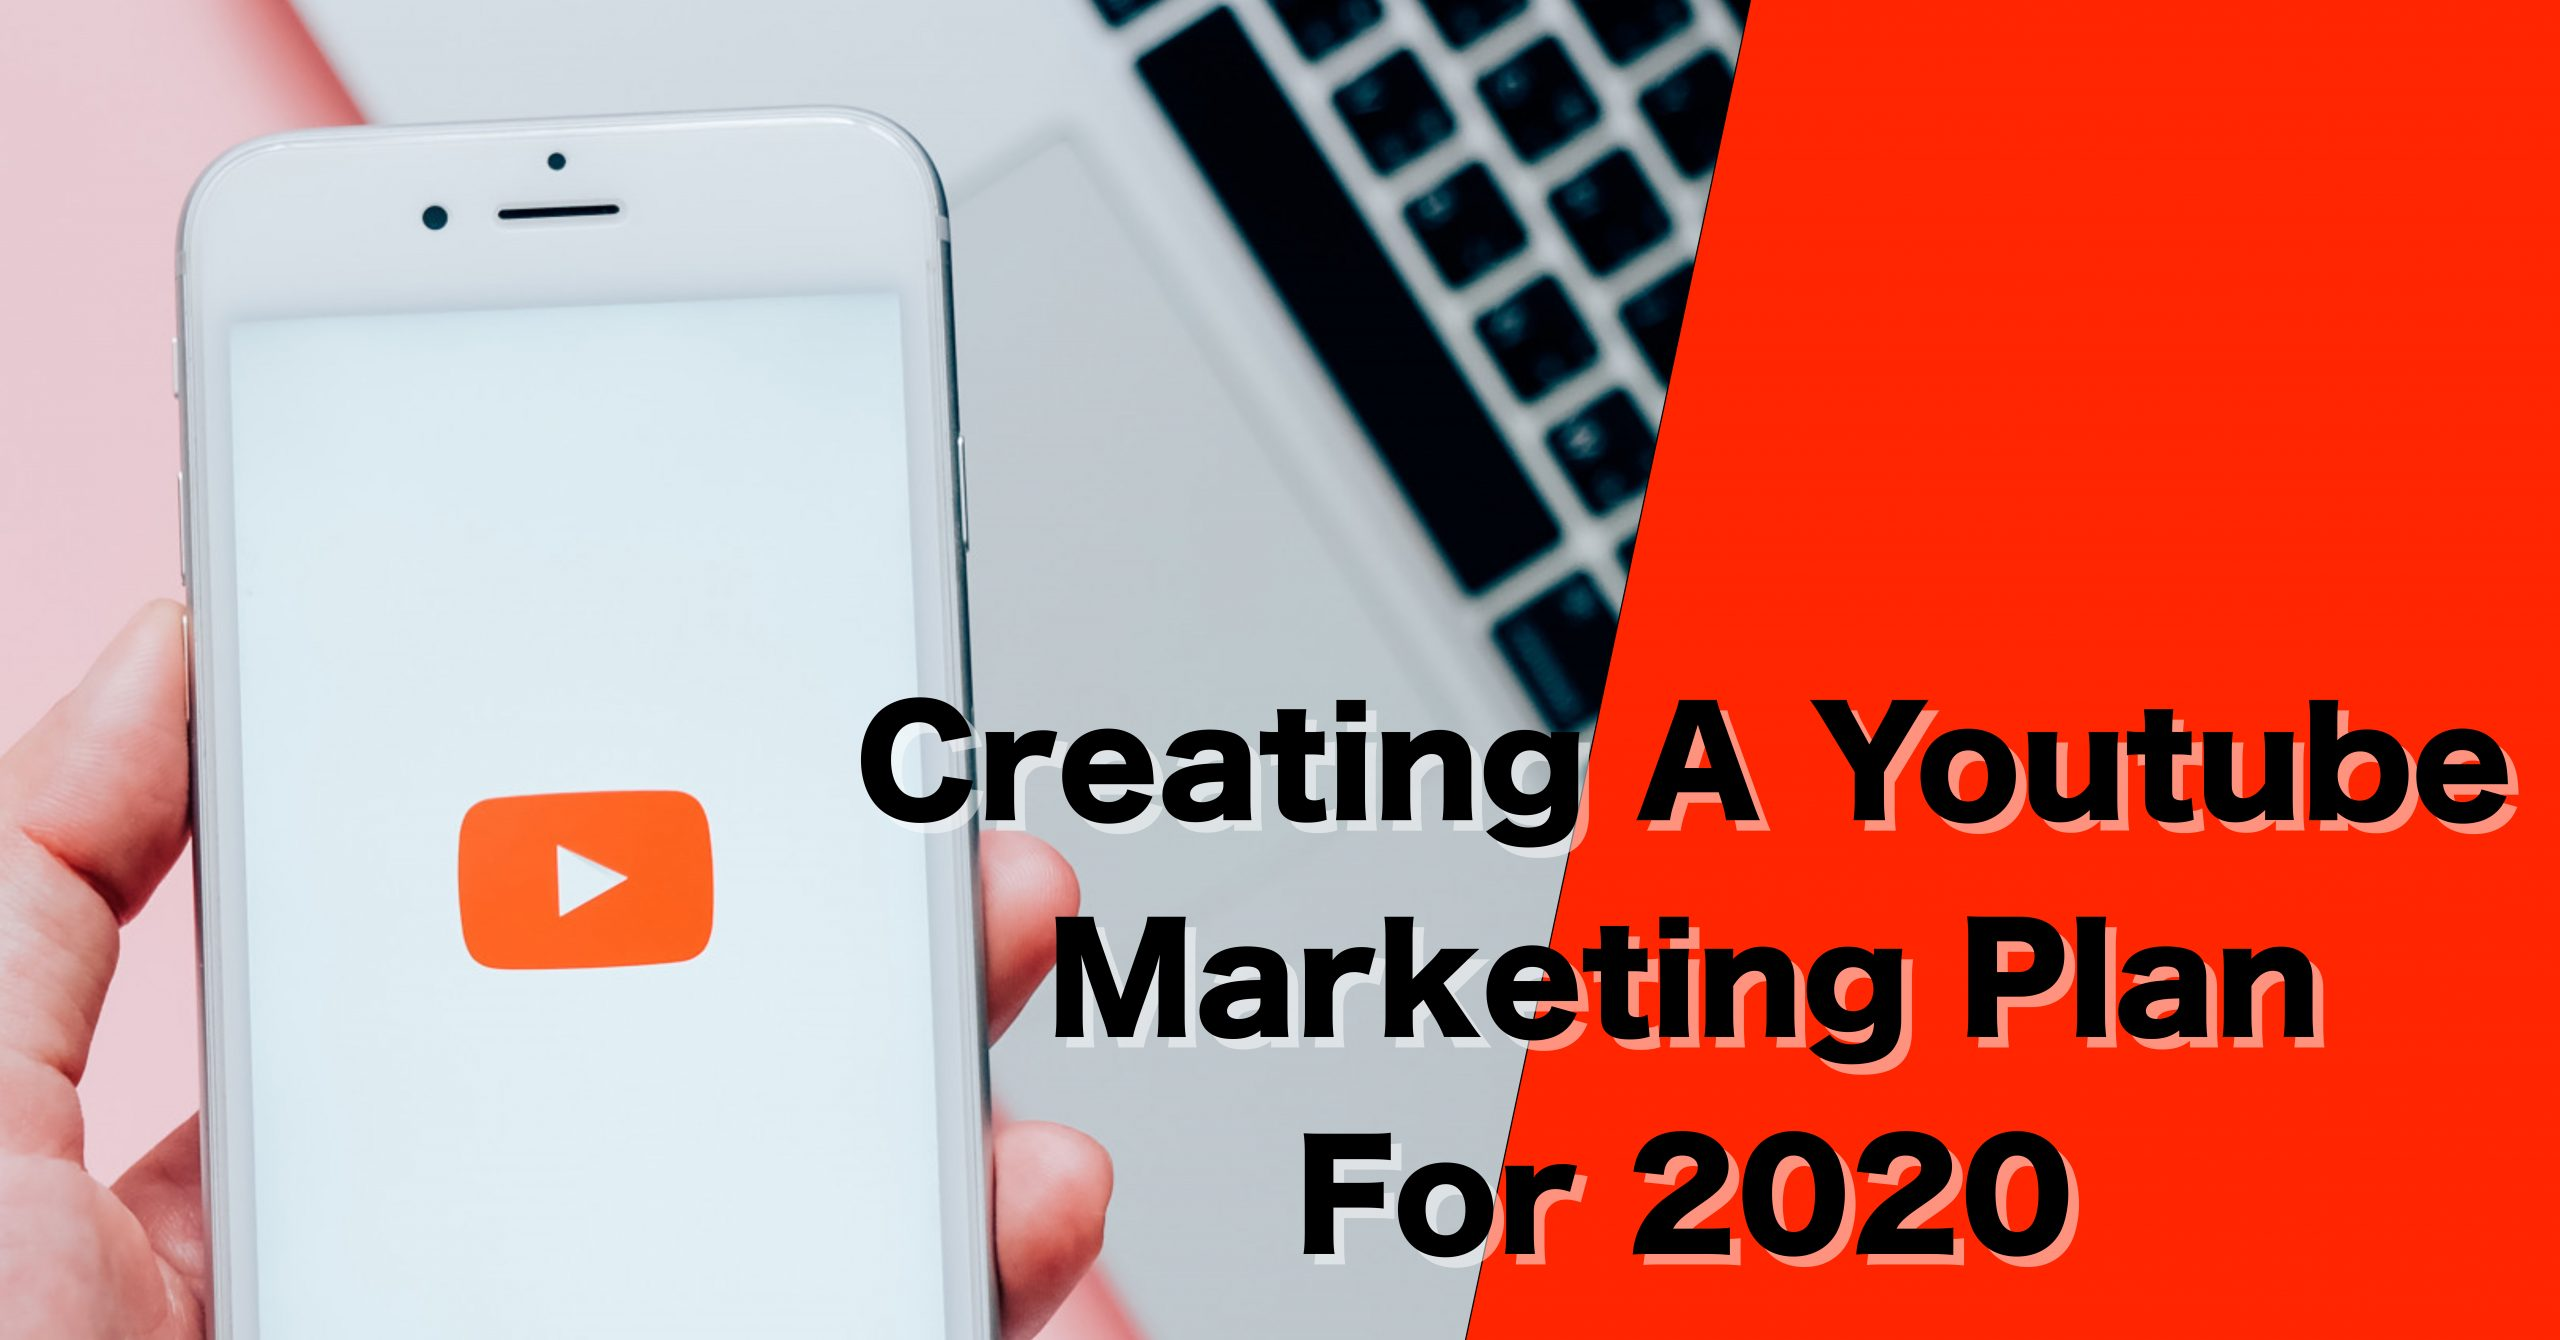 Youtube Marketing Plan 2020 | Super Media